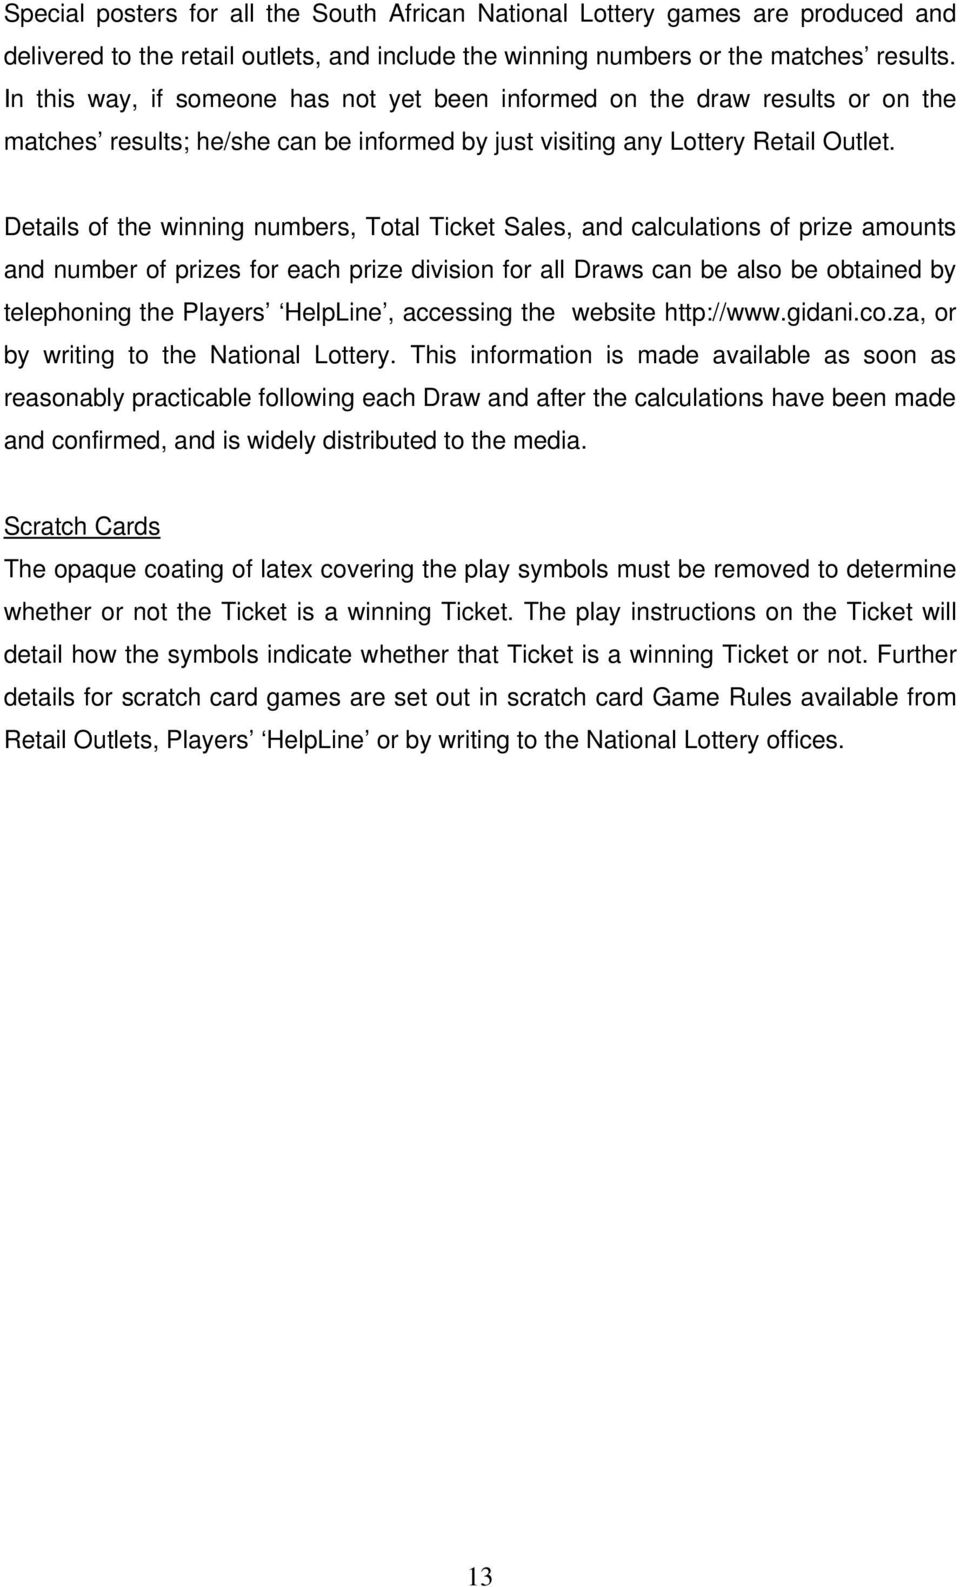 NATIONAL LOTTERY PARTICIPANTS CODE OF PRACTICE - PDF